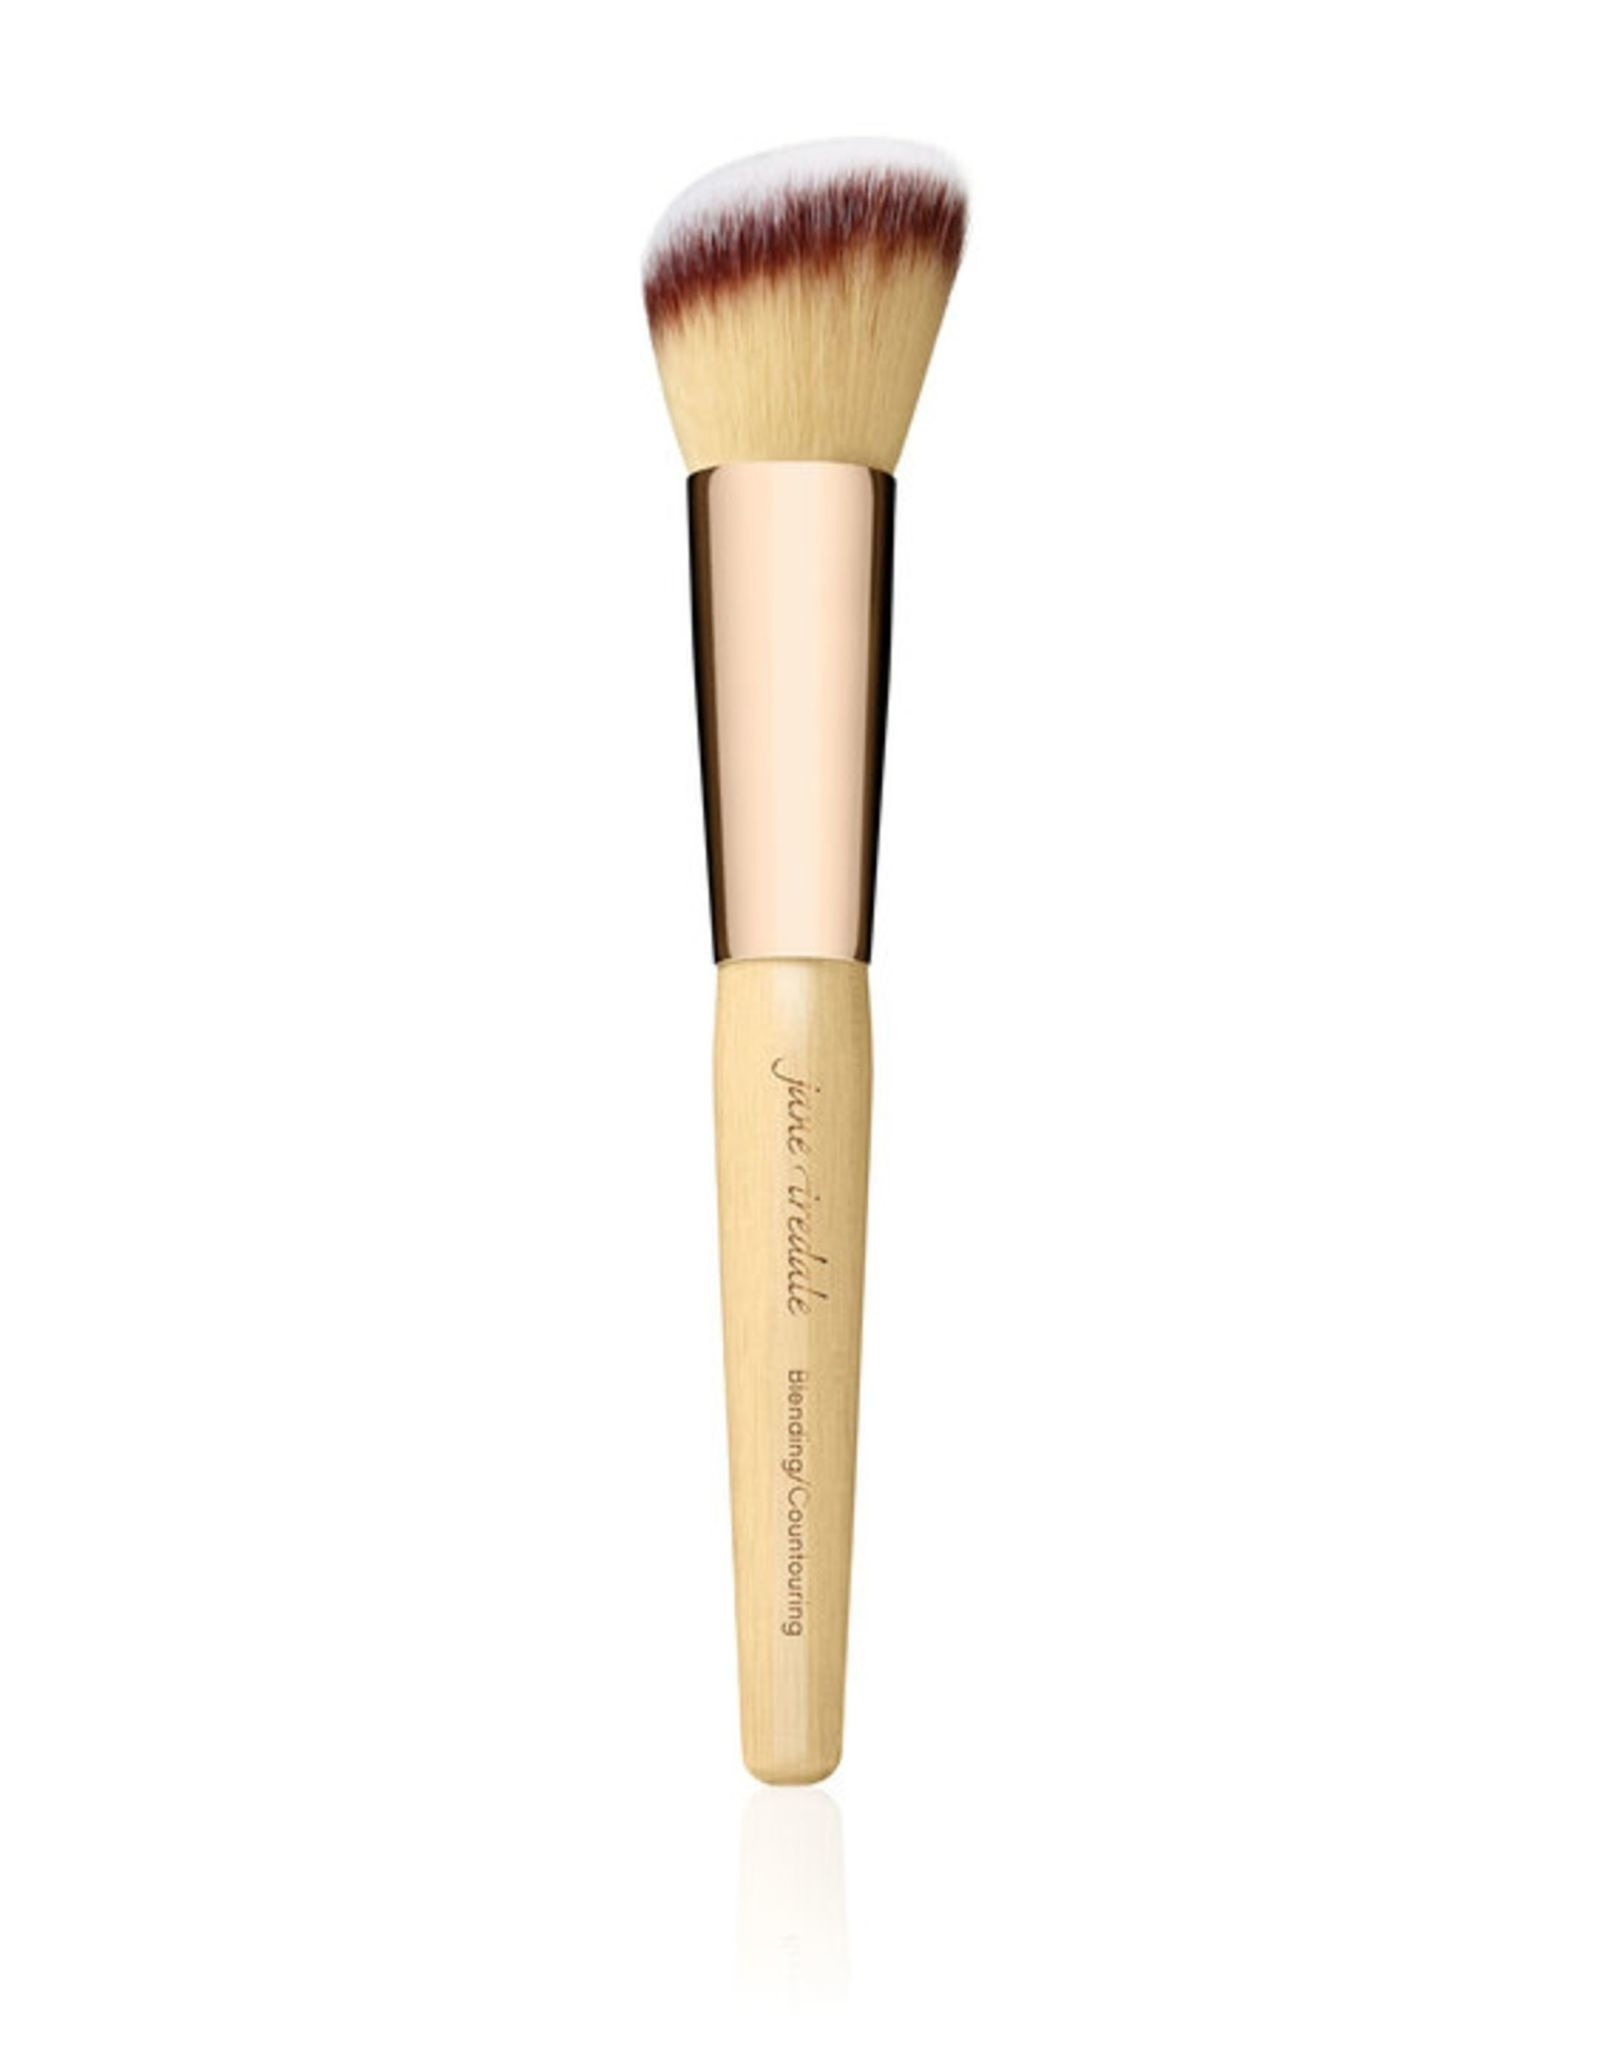 Jane Iredale Blending/Contouring Brush